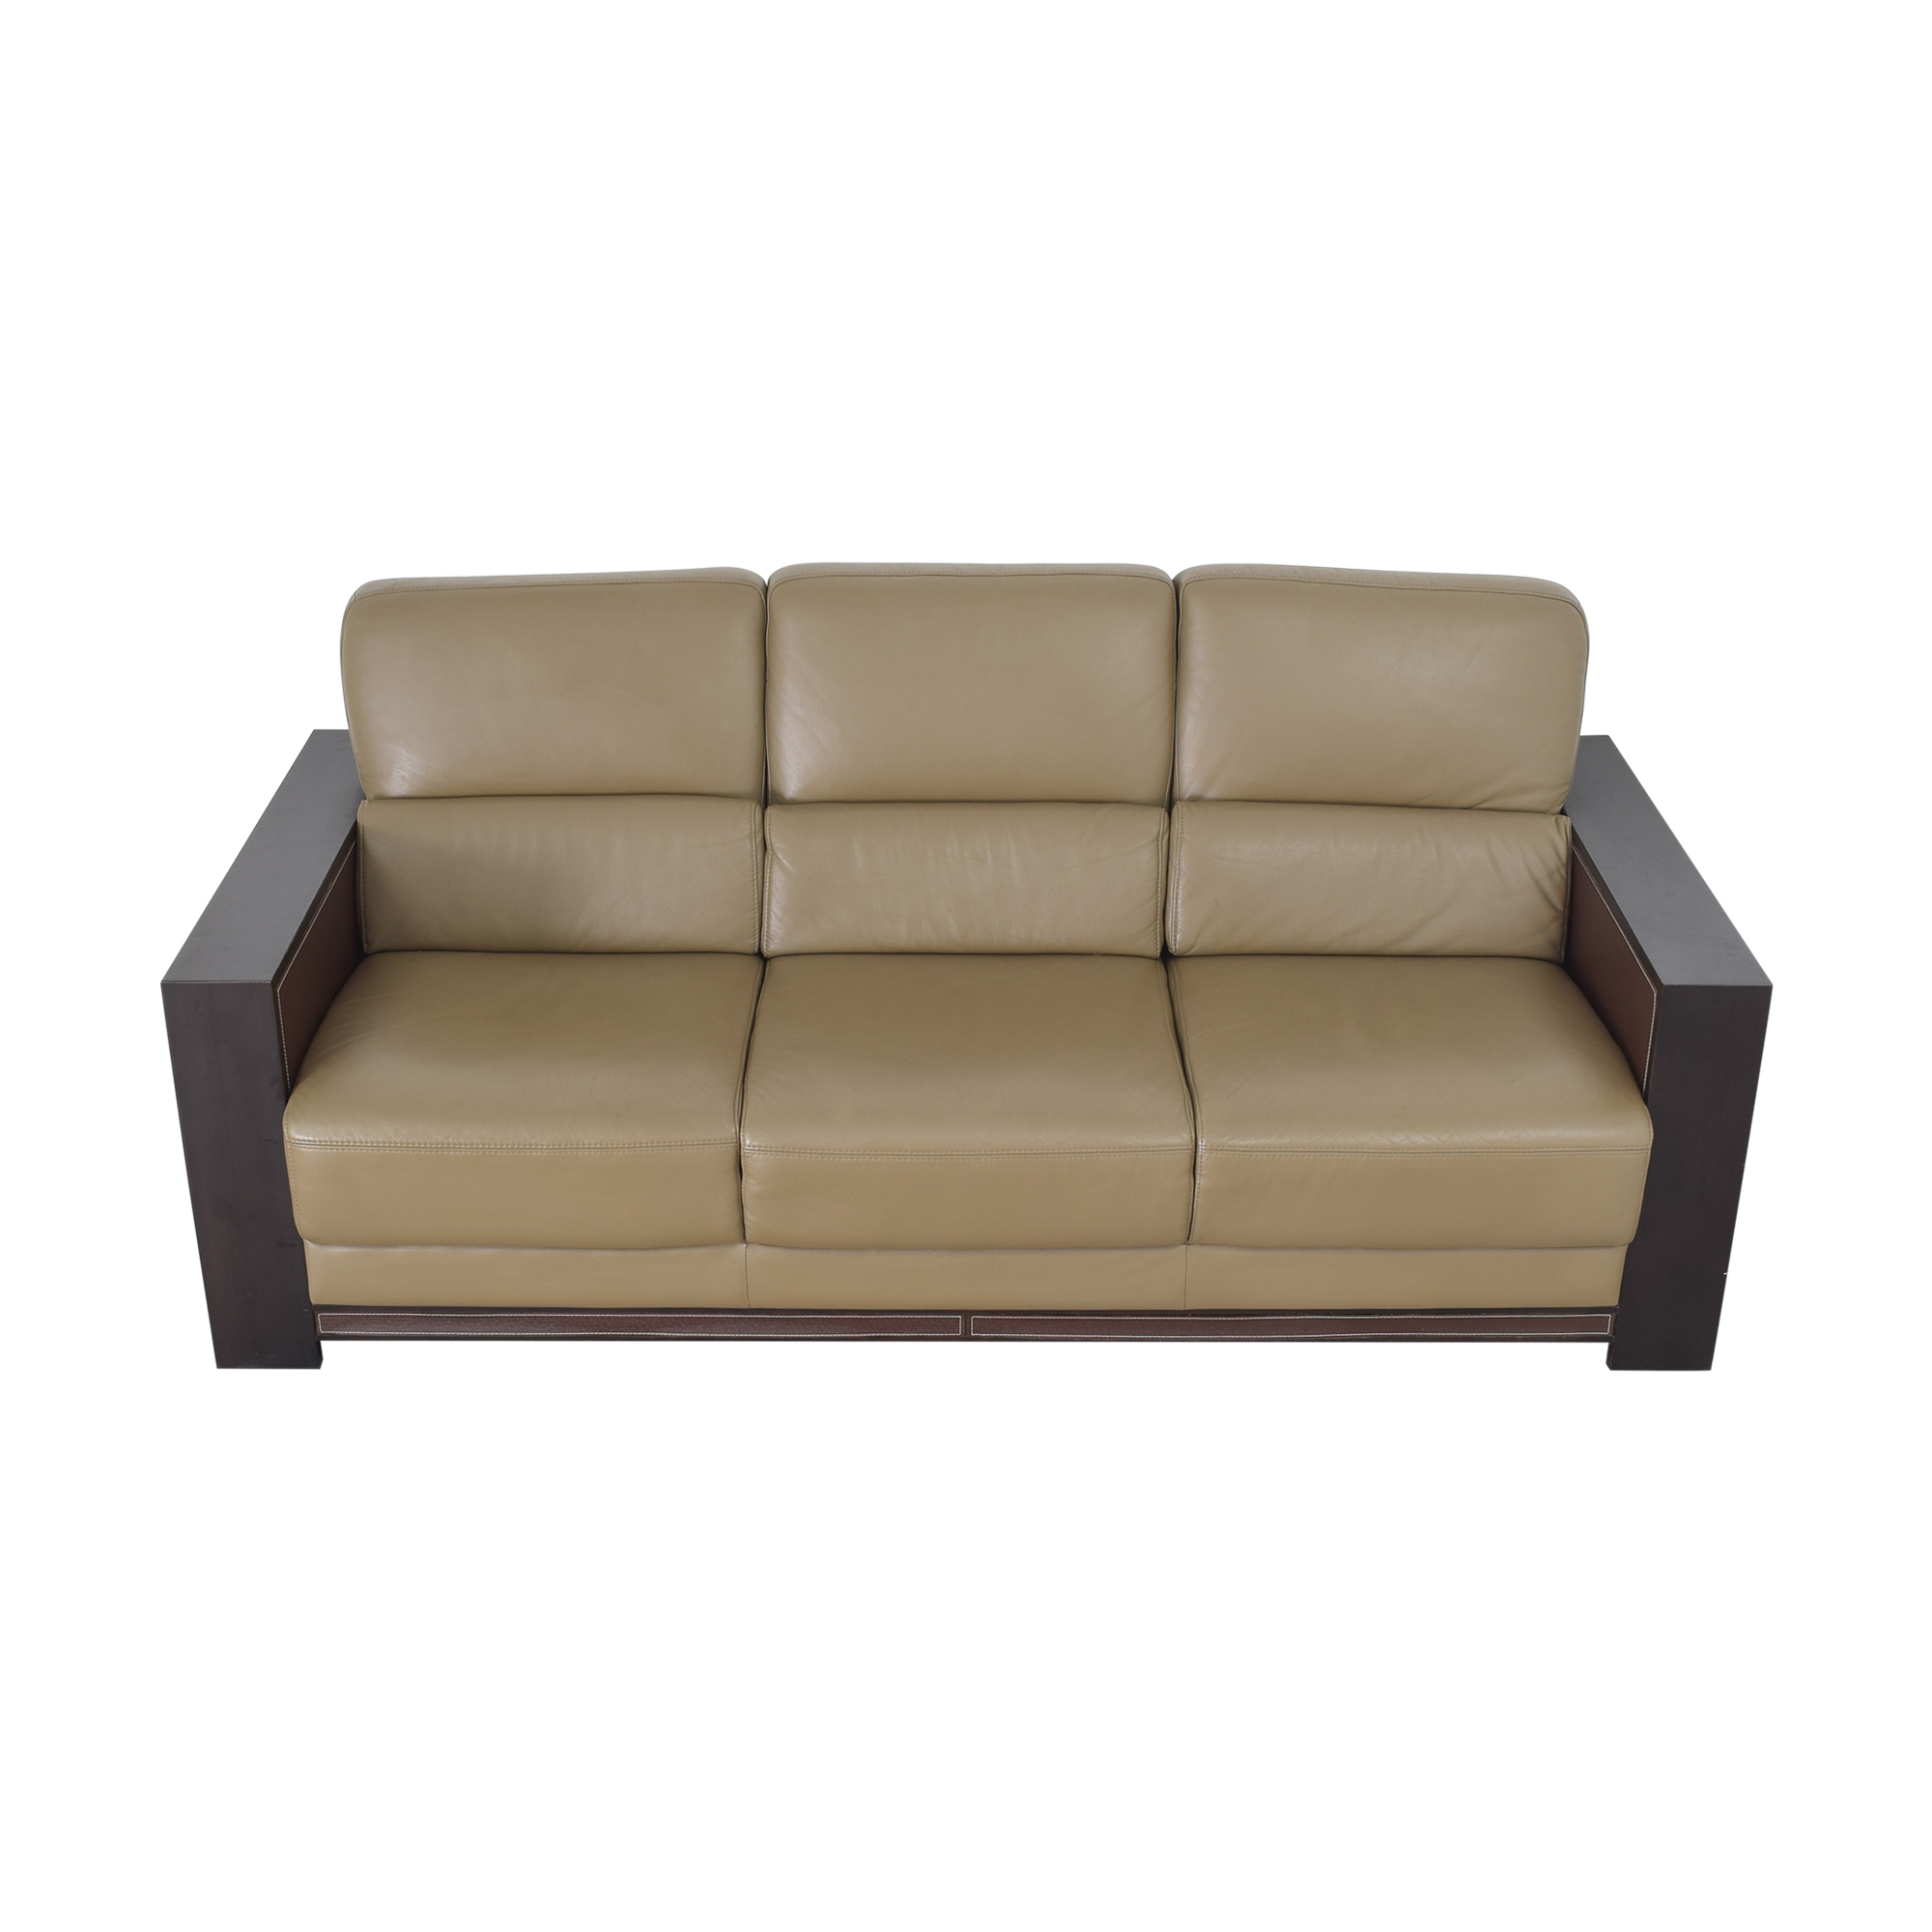 Lorenzo Lorenzo Three Seat Sofa nj